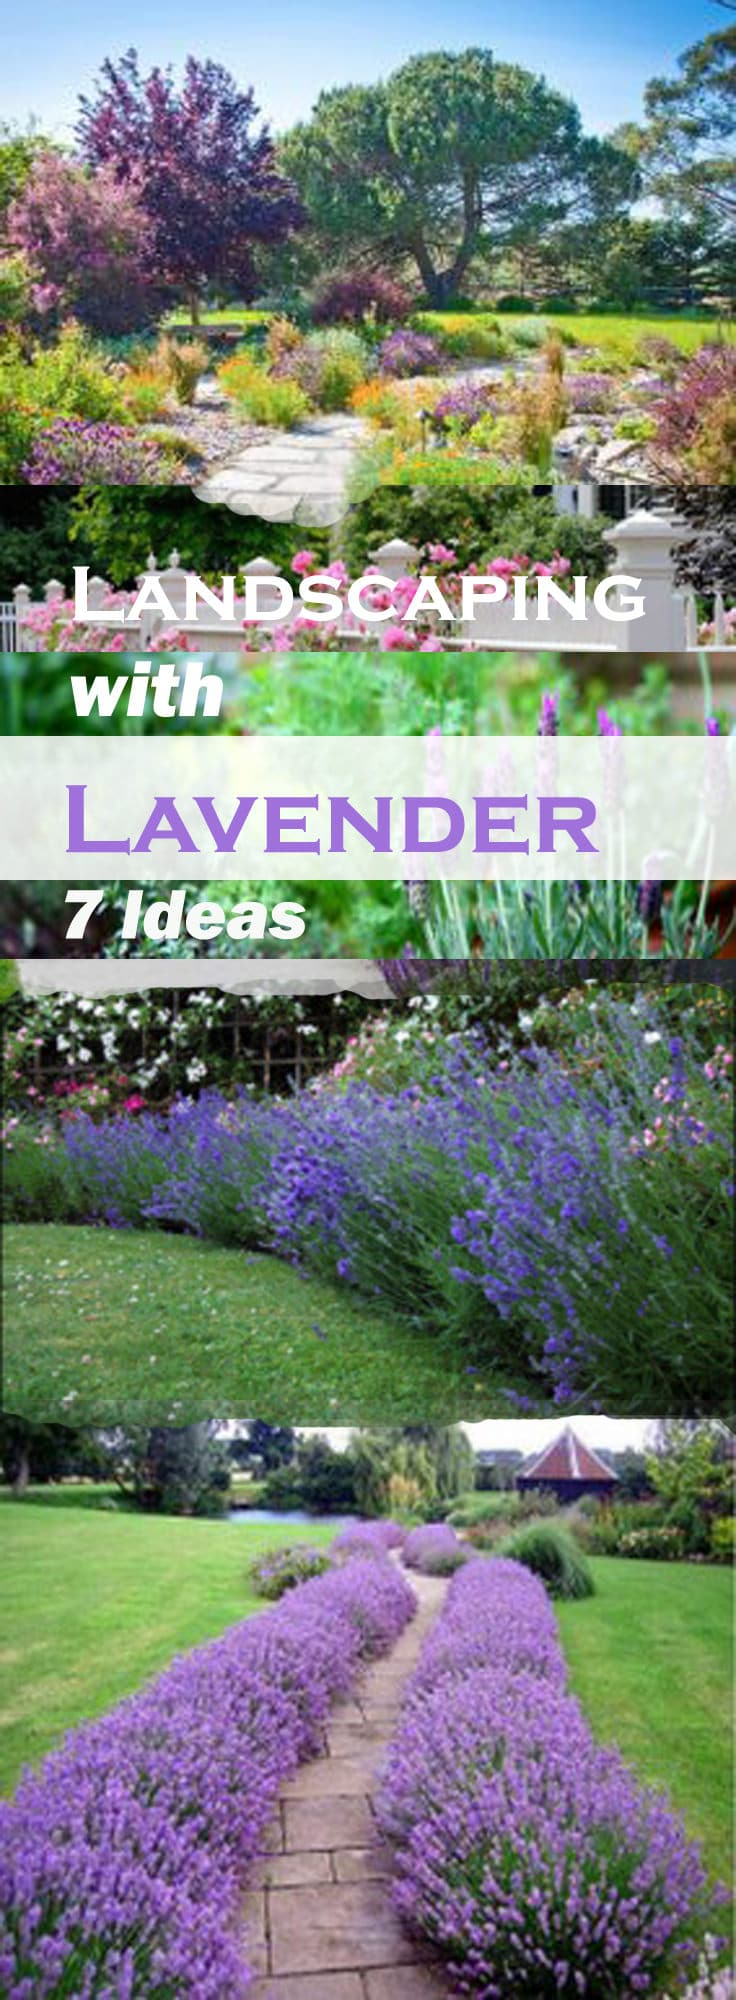 Landscaping with lavender 7 garden design ideas for Garden design ideas